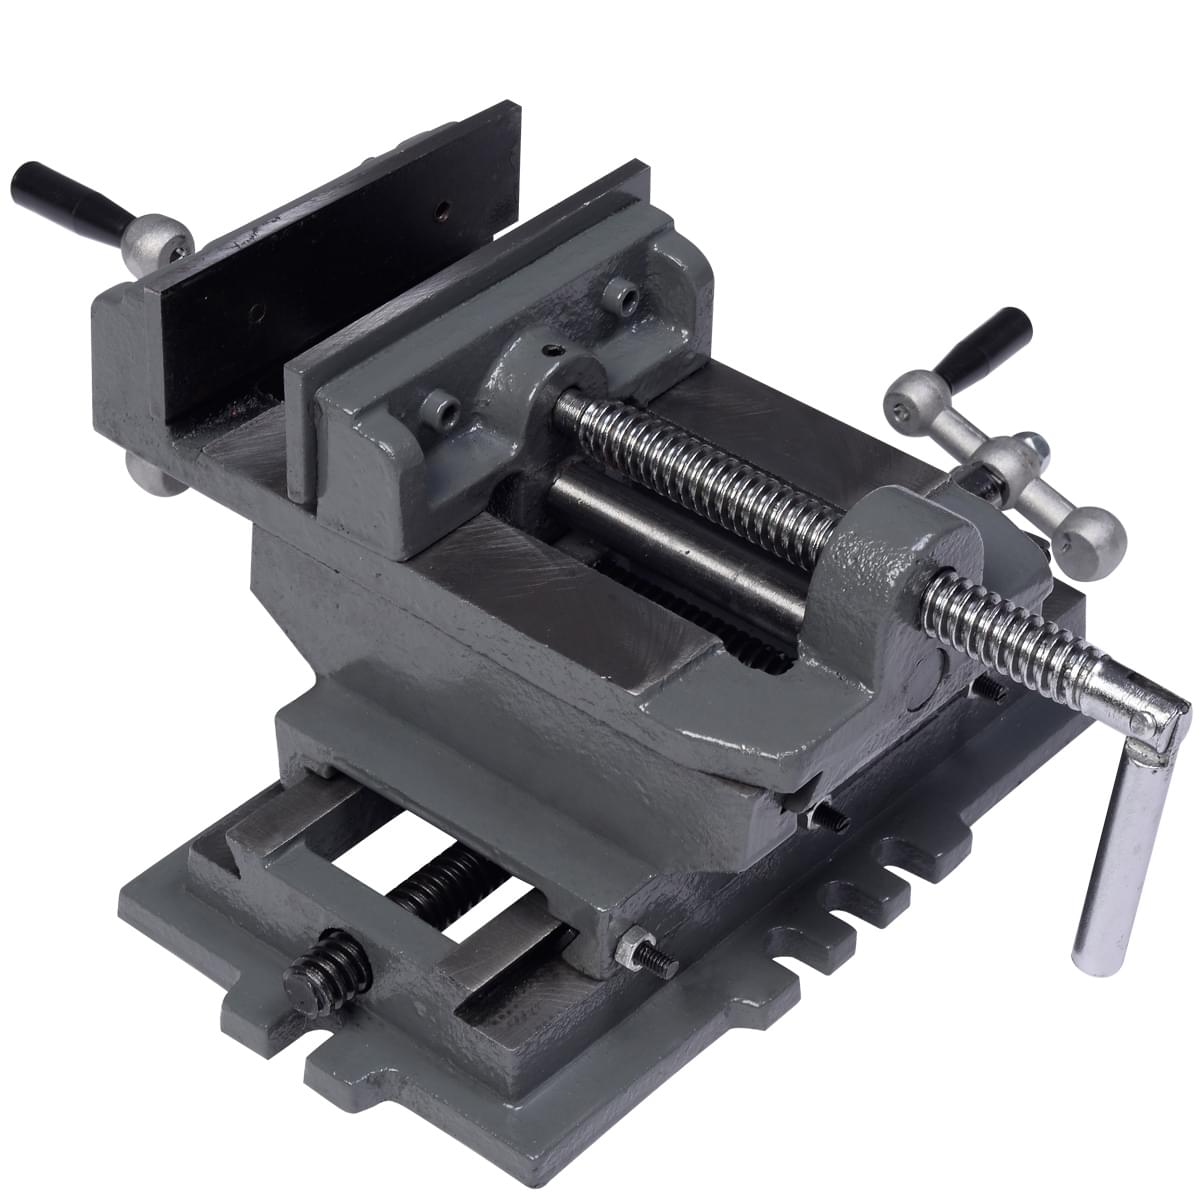 Q97 XY Cross Slide Vise